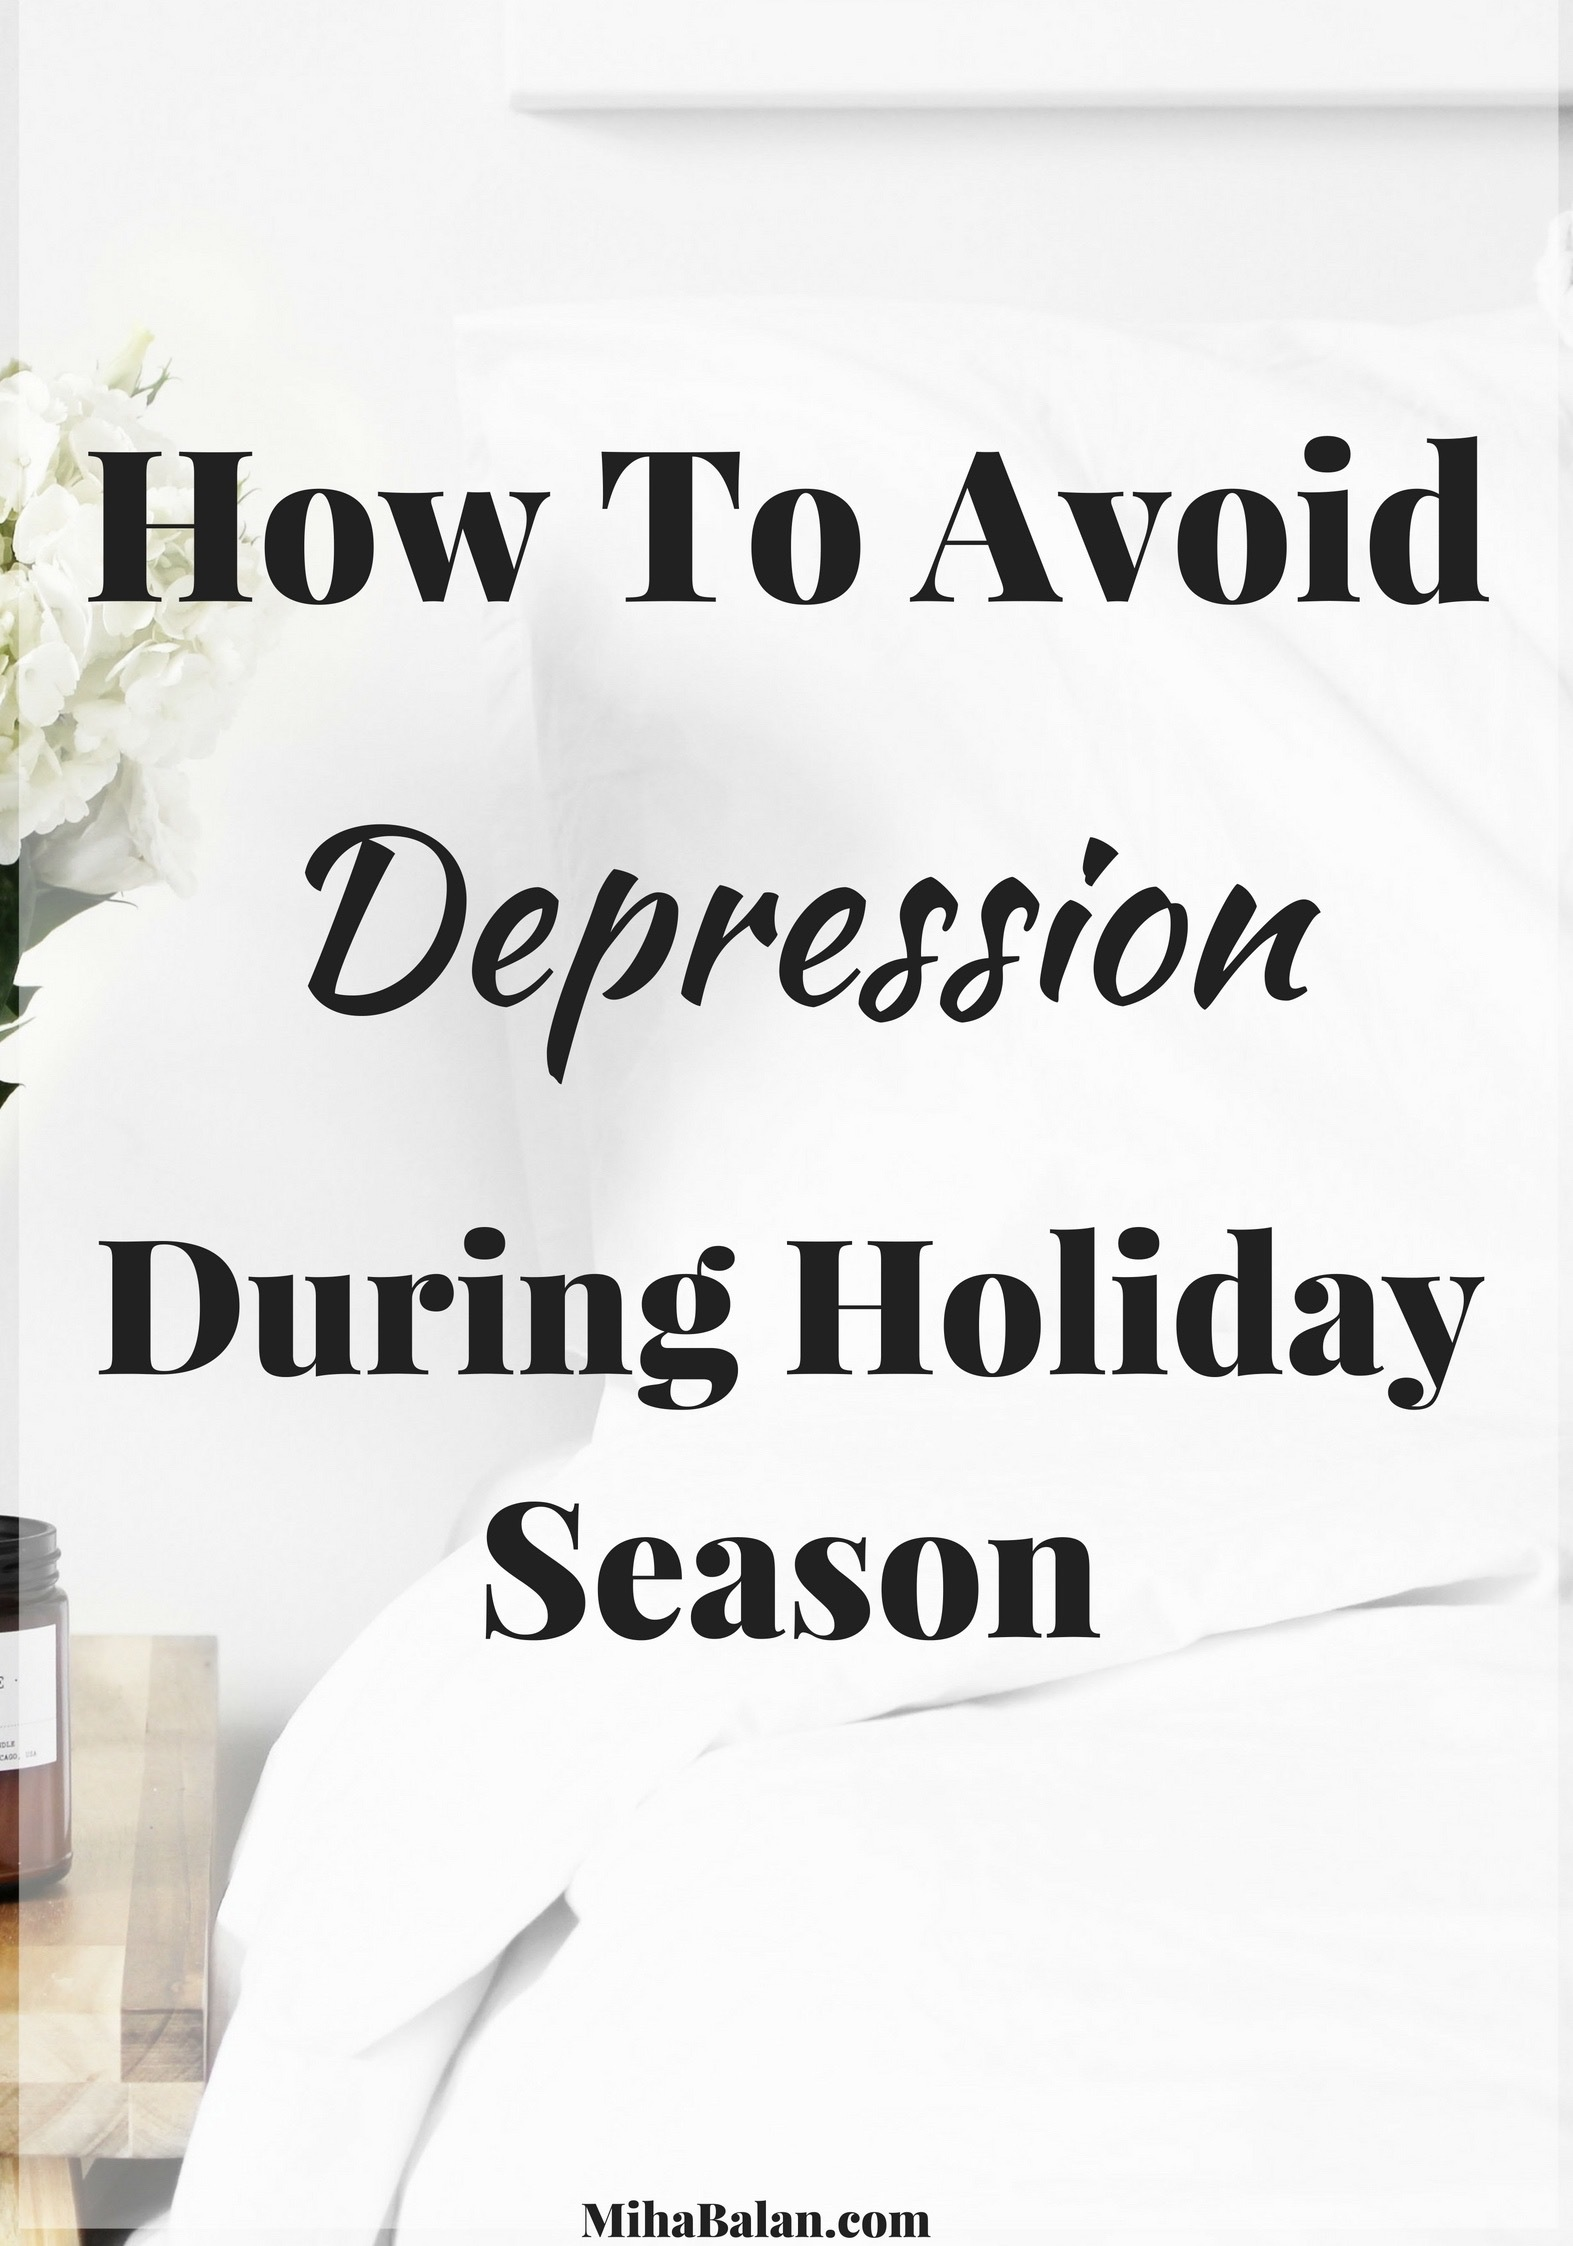 How To Avoid depression during holiday season